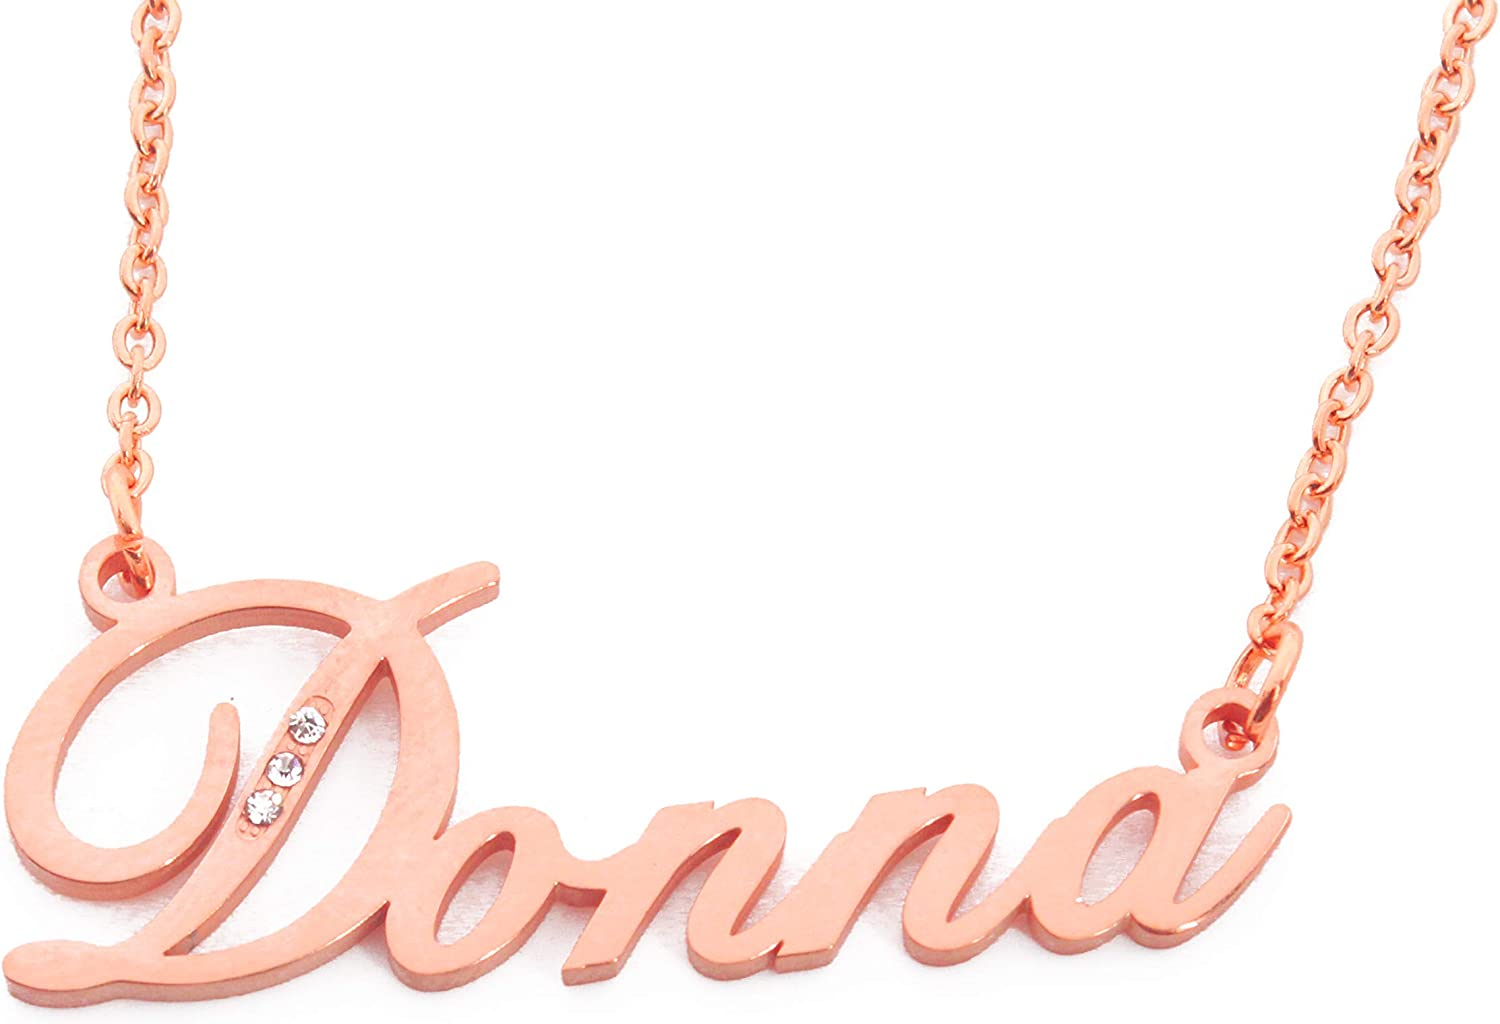 Italic Donna Name Necklace Rose Gold Plated Personalized Dainty Necklace - Jewelry Gift Women, Girlfriend, Mother, Sister, Friend, Gift Bag & Box